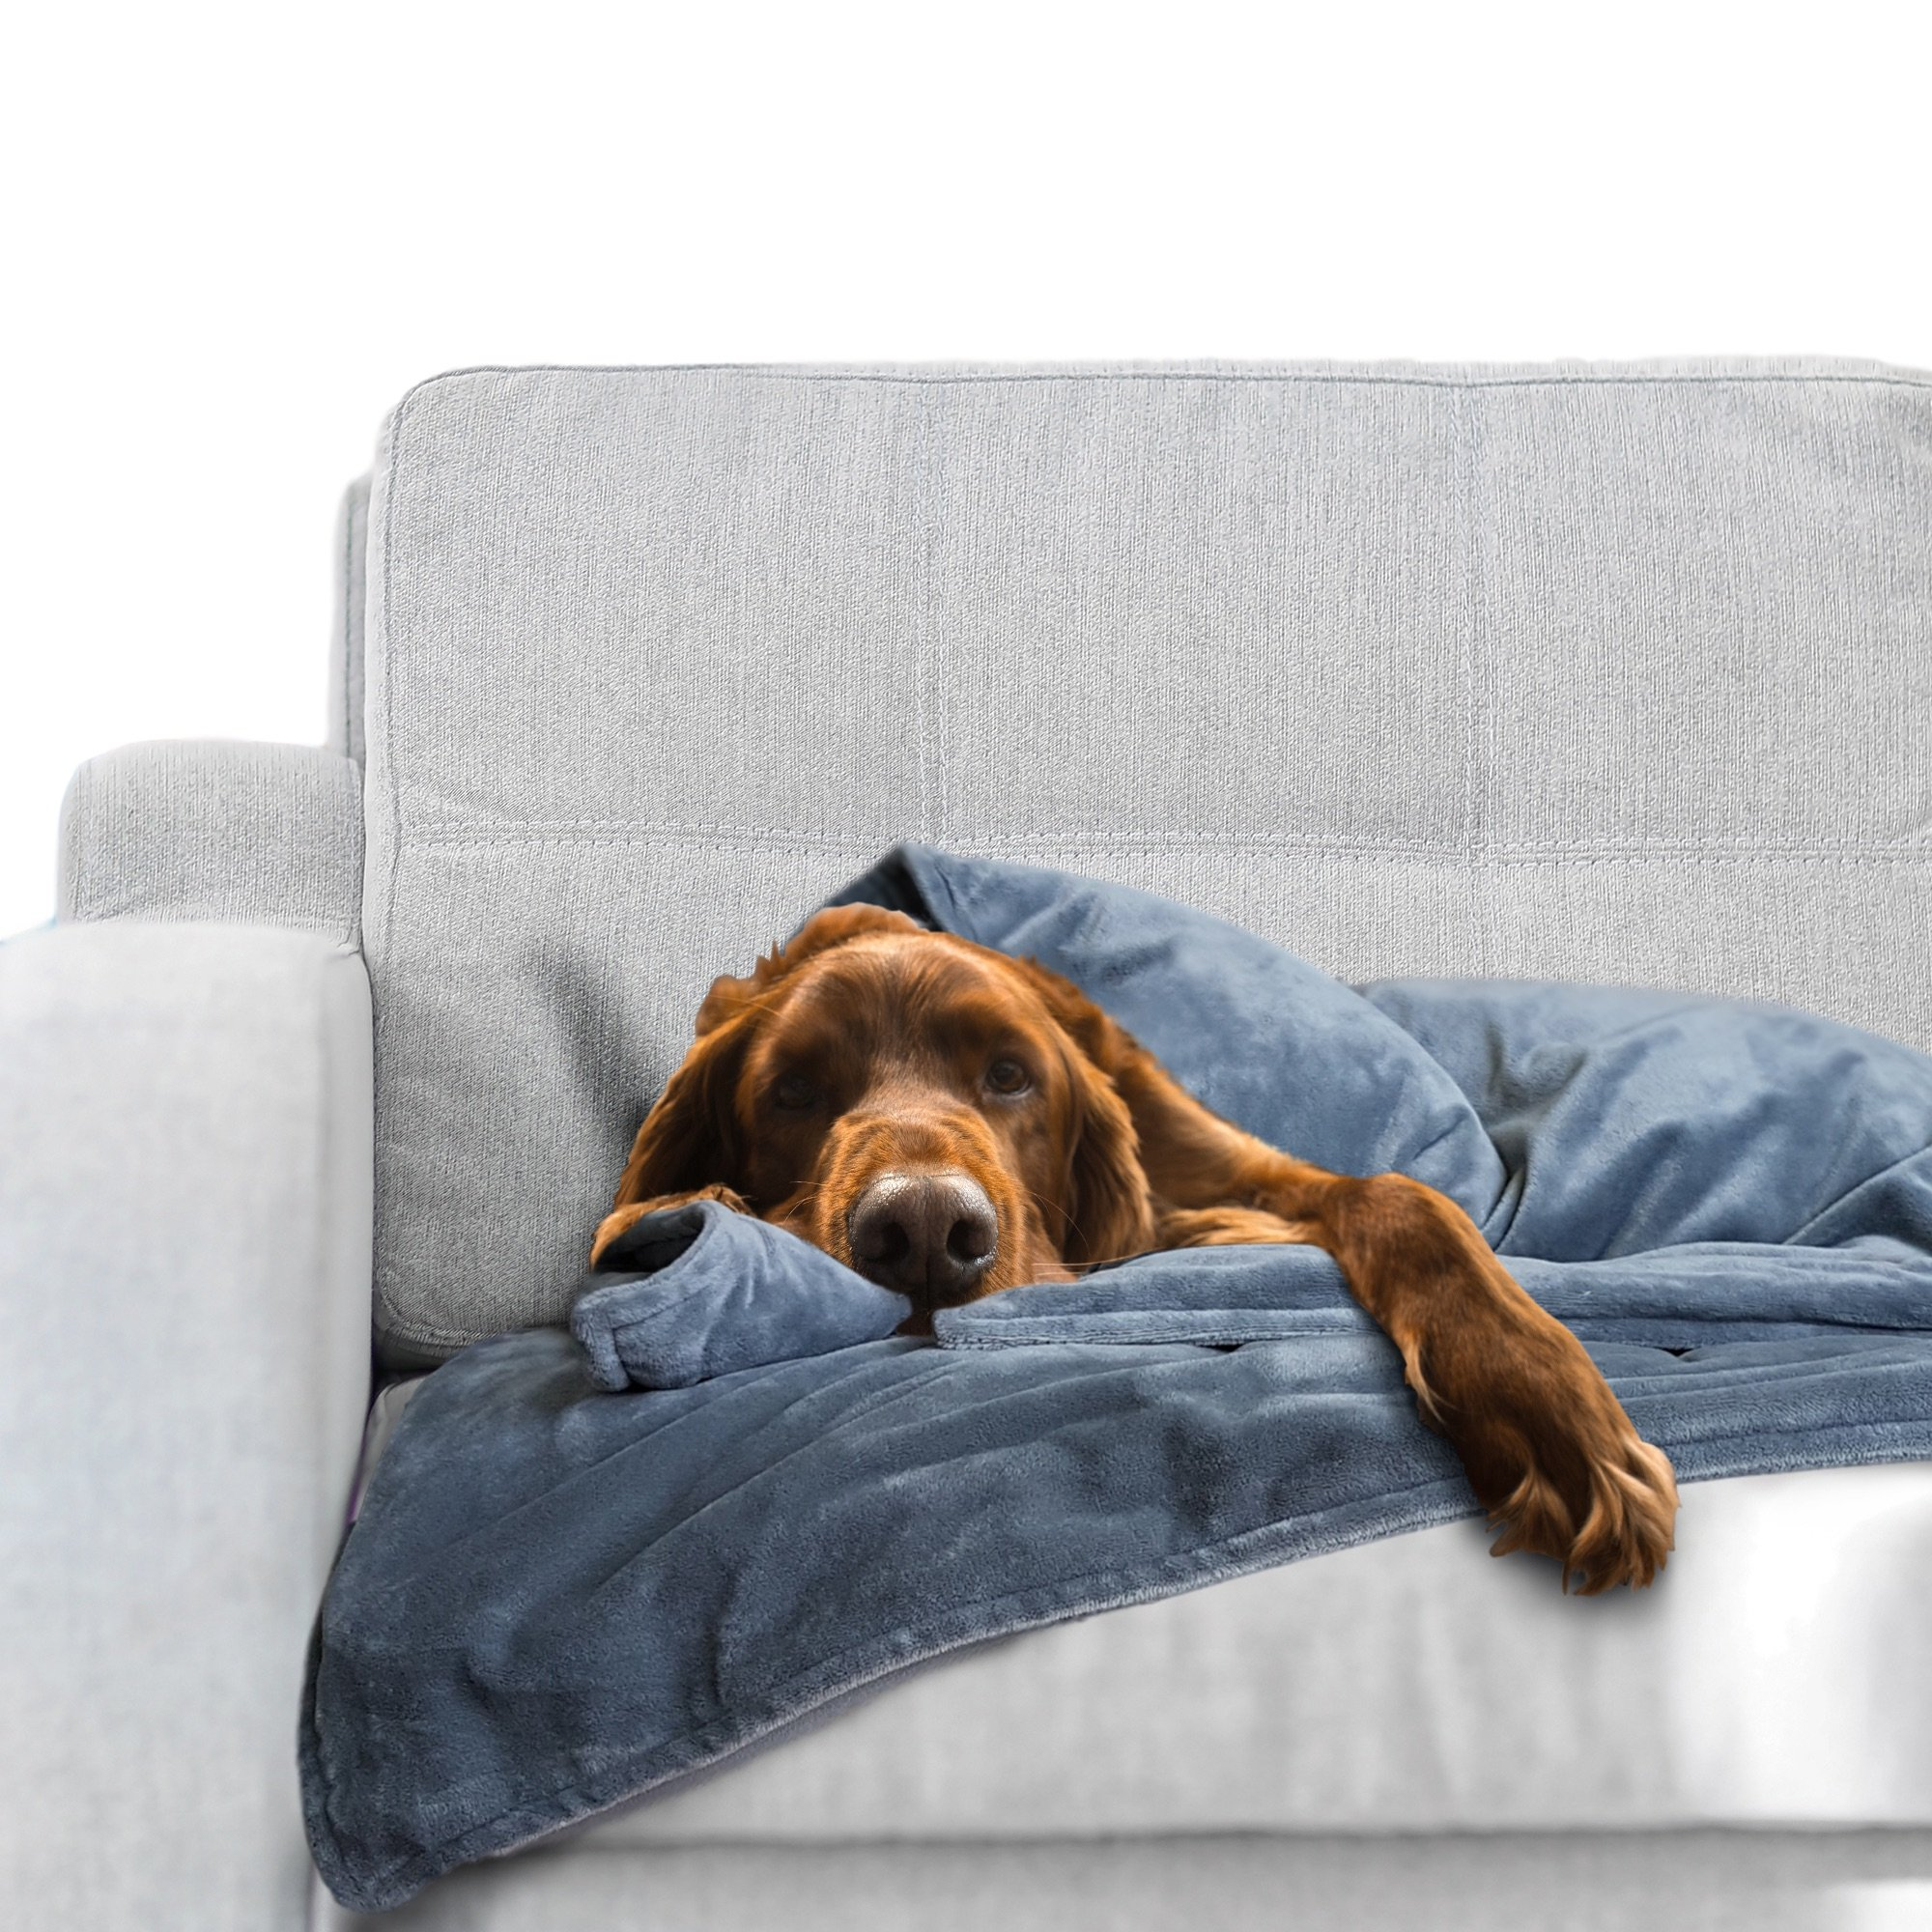 Weighted Dog Anti Anxiety Blanket (Large Dog Over 50 Lbs)